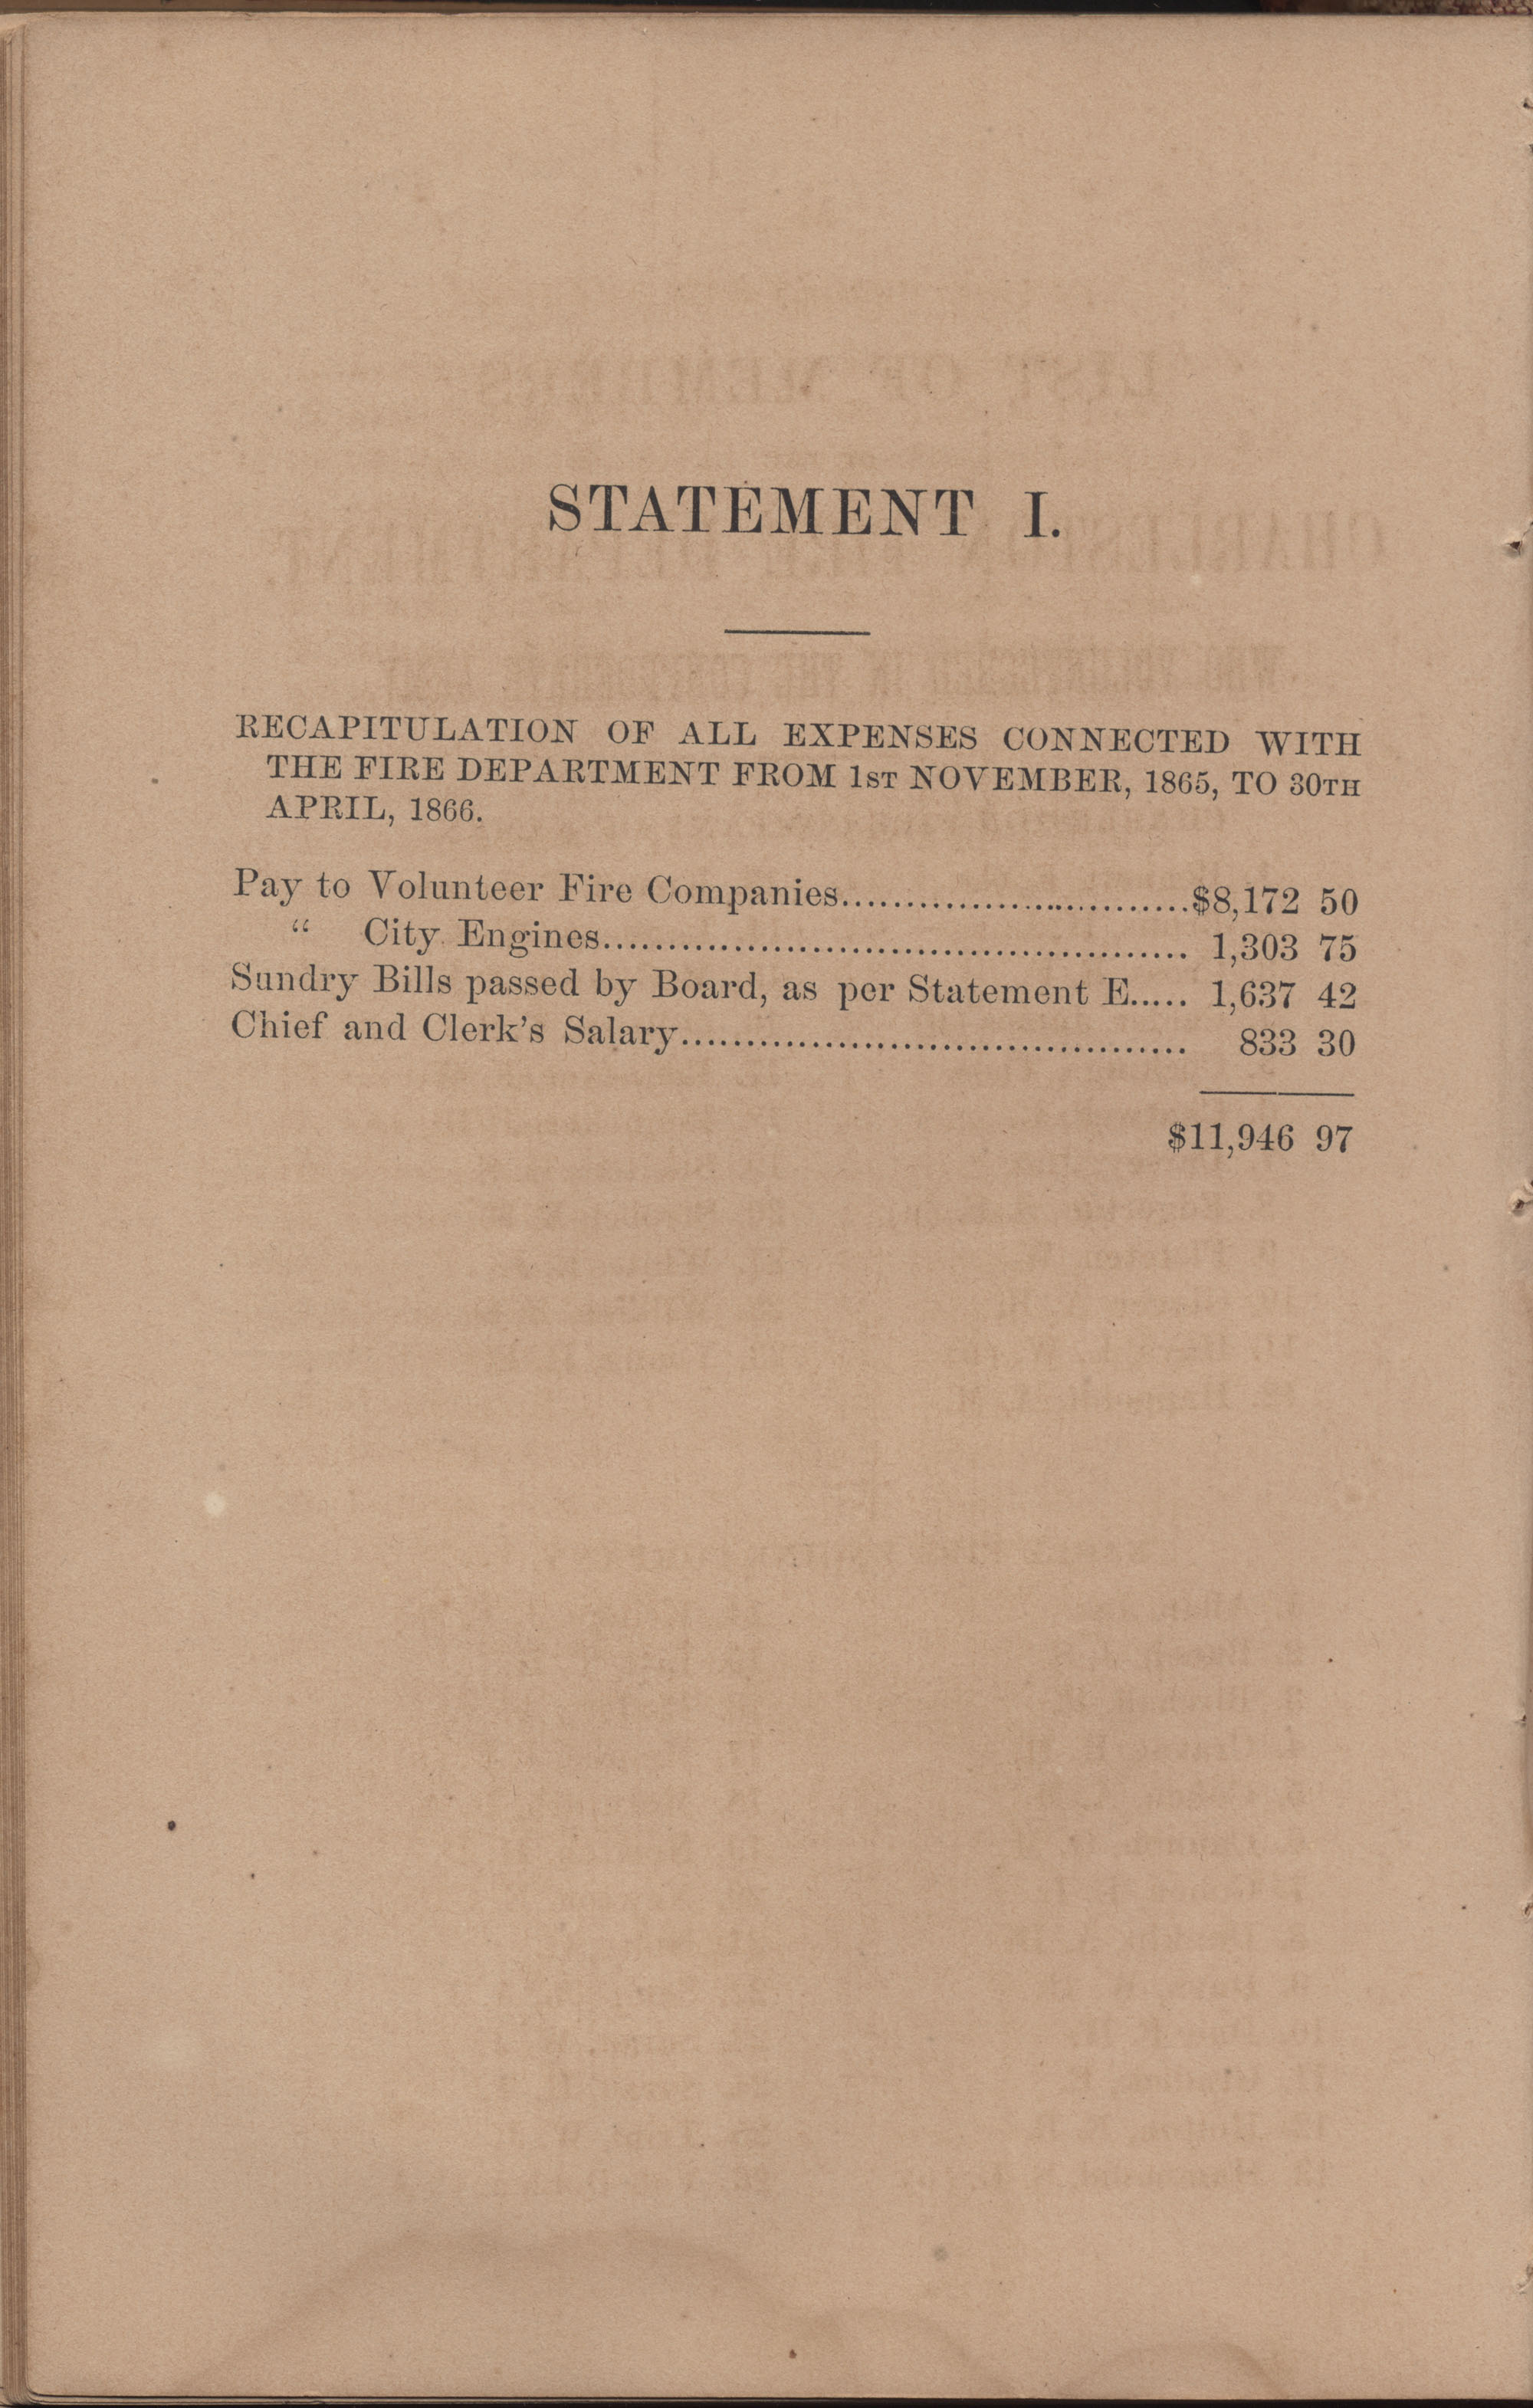 Annual Report of the Chief of the Fire Department of the City of Charleston, page 134